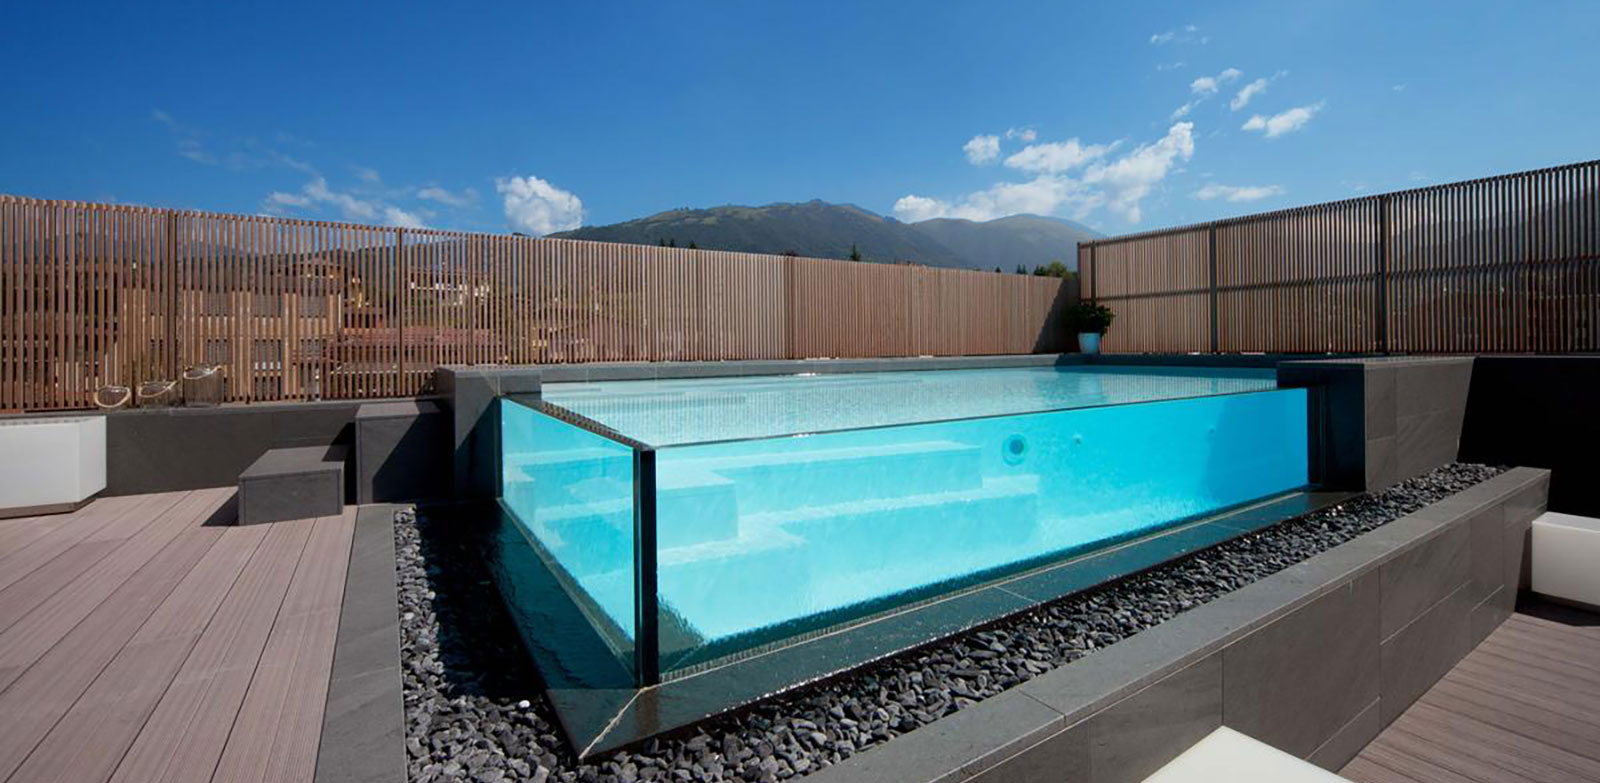 Piscine bordo sfioro crystal piscine dess for Piscina sfioro